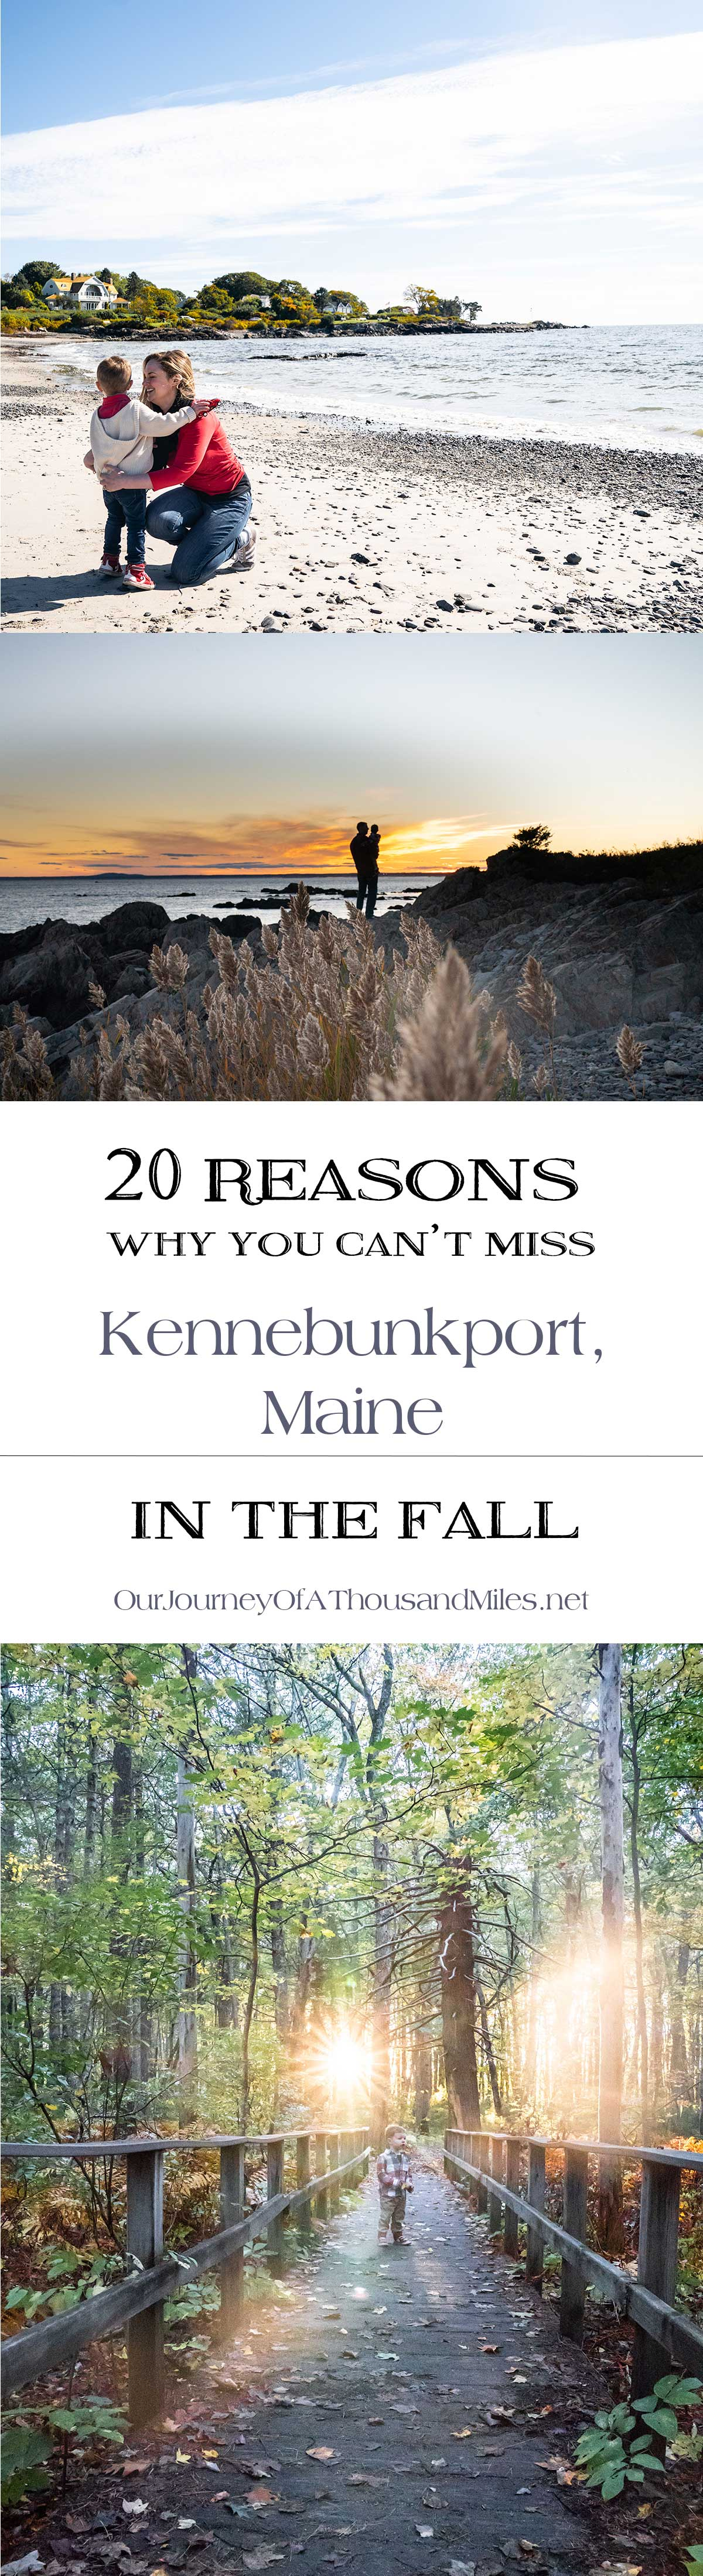 20-Reasons-Why-You-Cannot-Miss-Kennebunkport-Maine-In-The-Fall-Travel-Guide